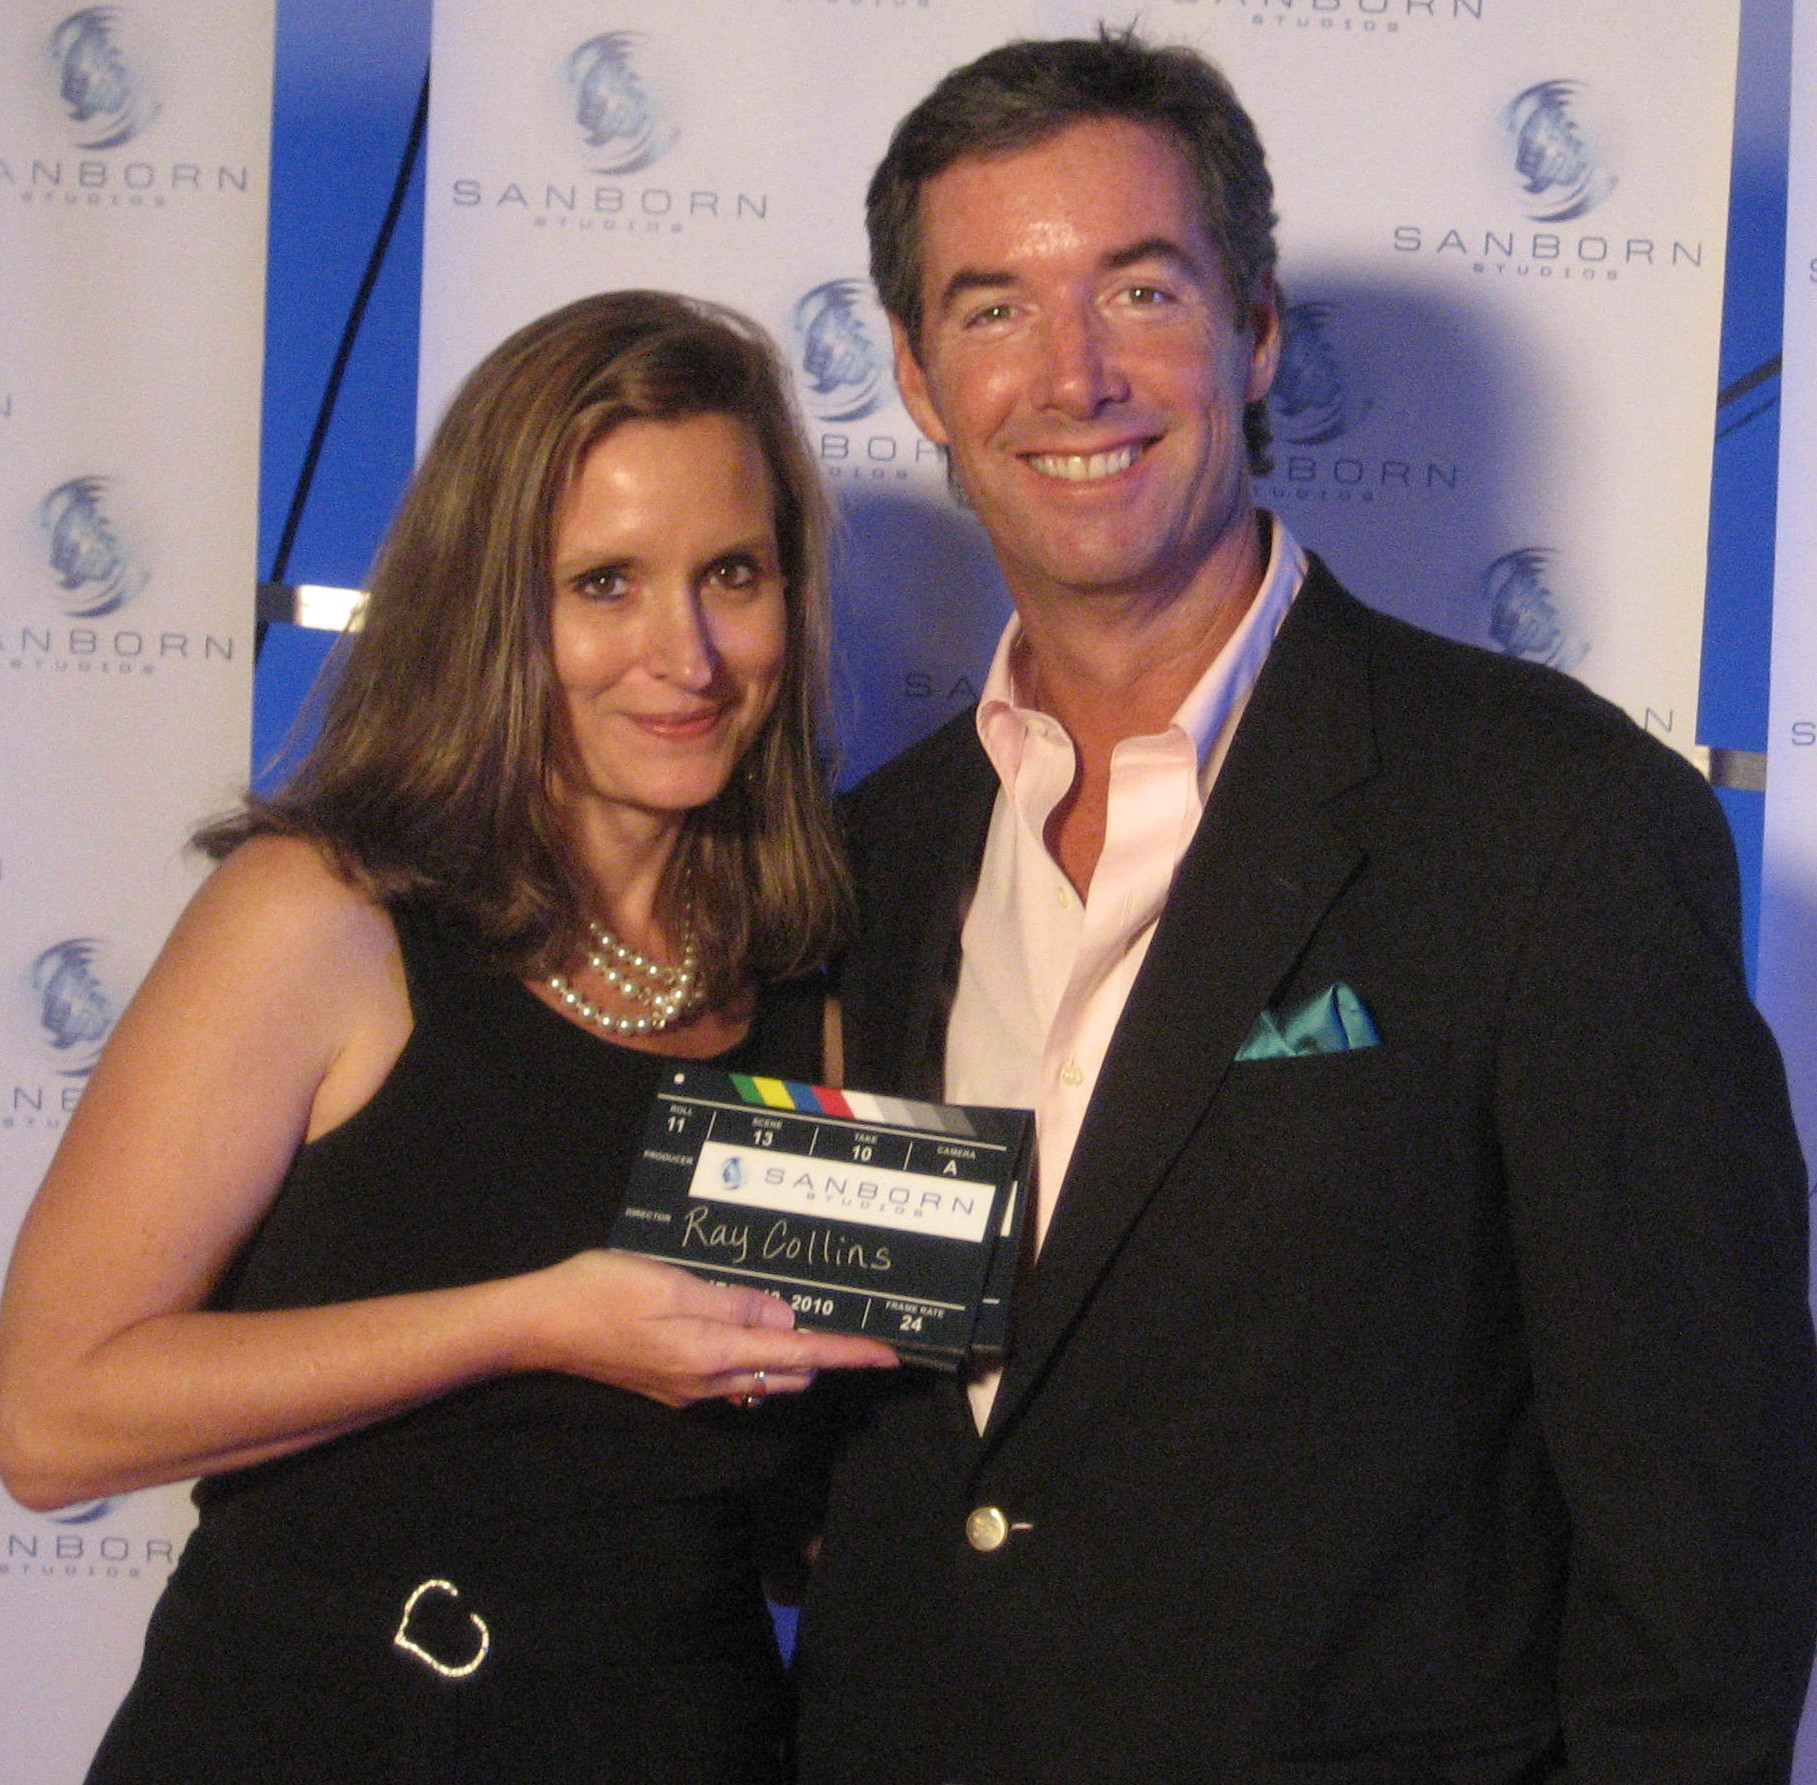 Sarasota Film Festival Director Kathy Jordan and Ray Collins.